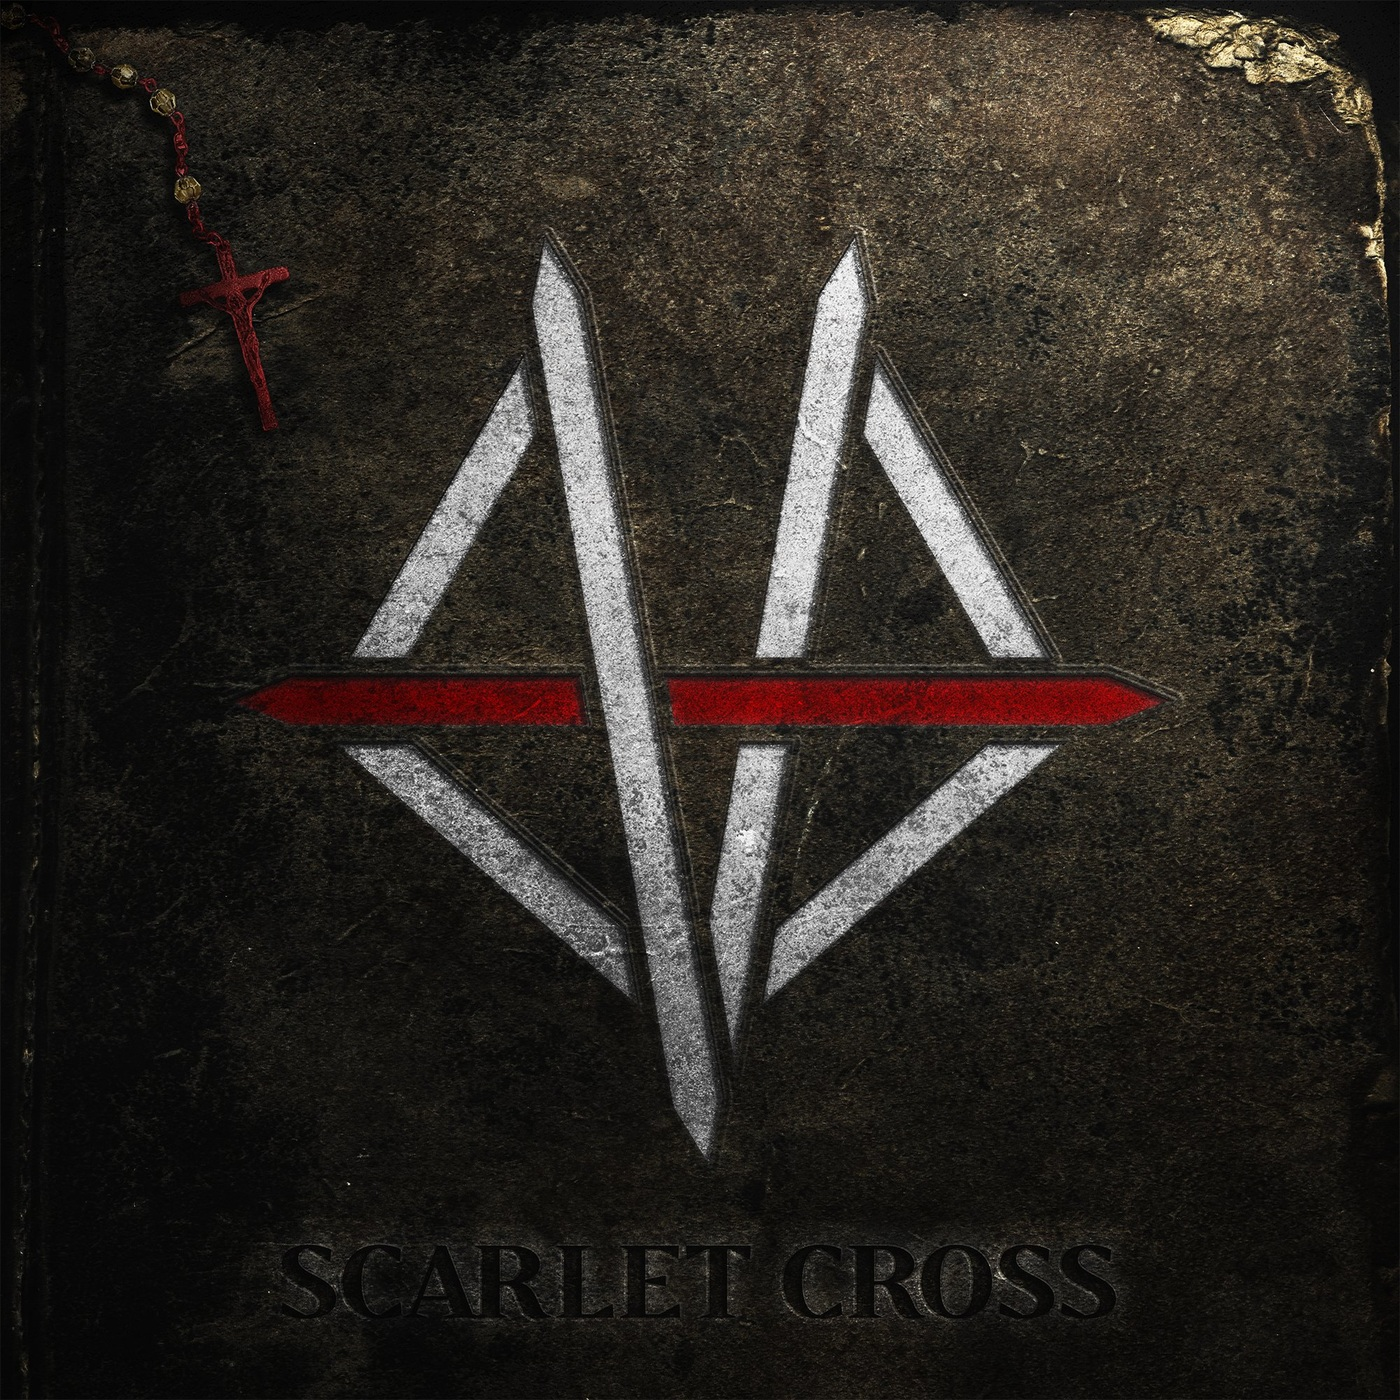 Black Veil Brides - Scarlet Cross [single] (2020)